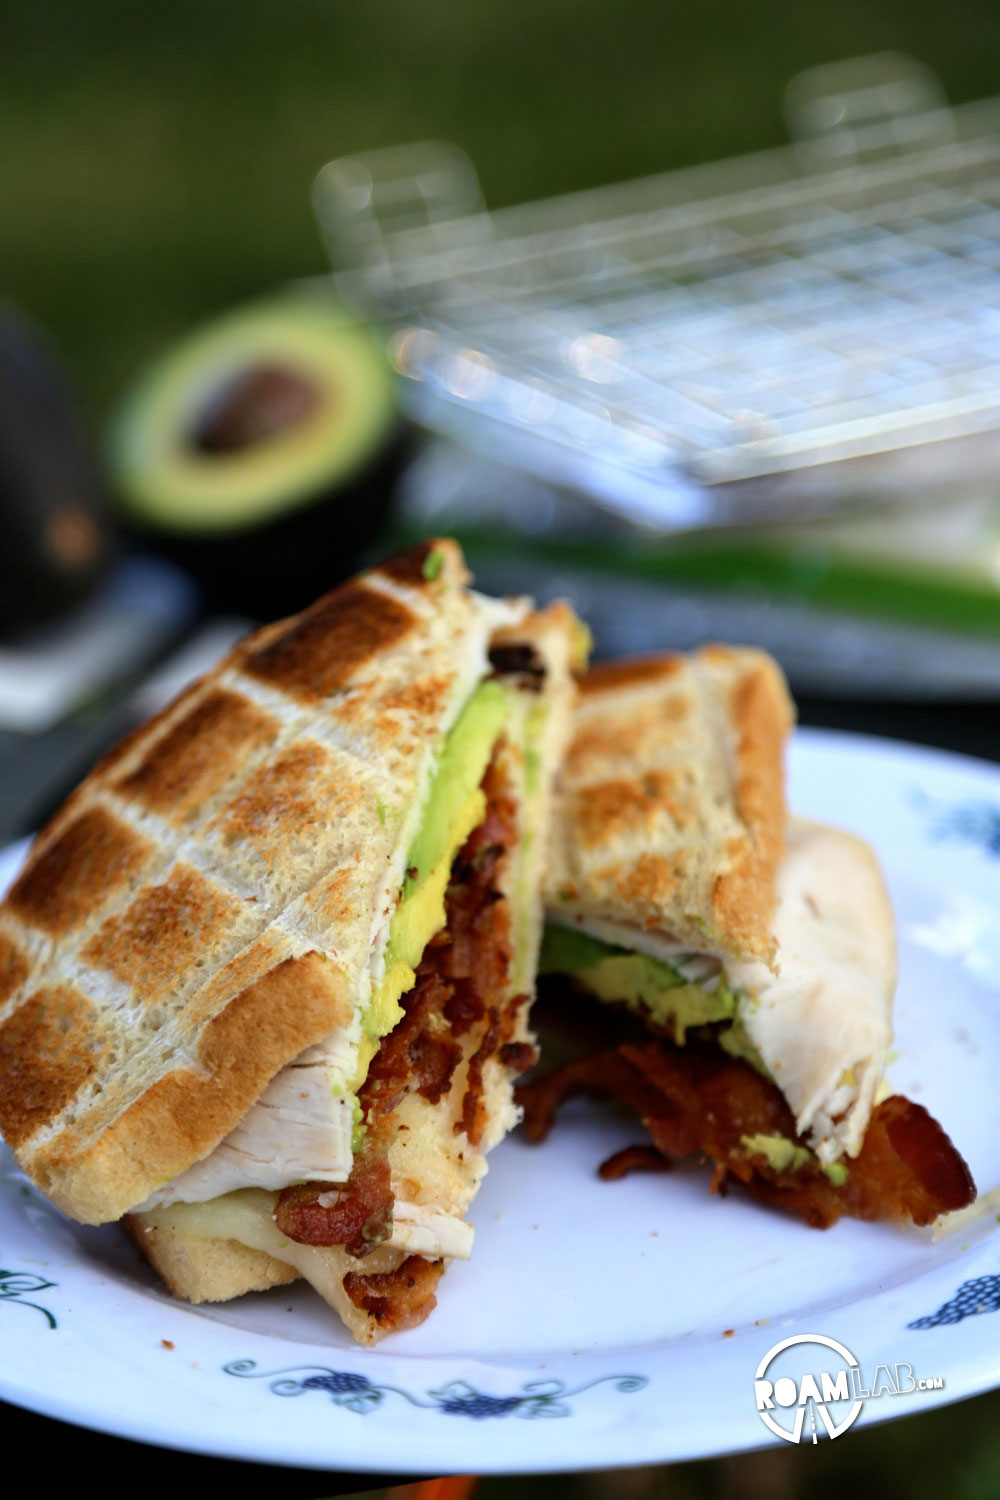 Enjoy a crispy explosion of flavor at your next camping trip with the Camper's Club Sandwich.